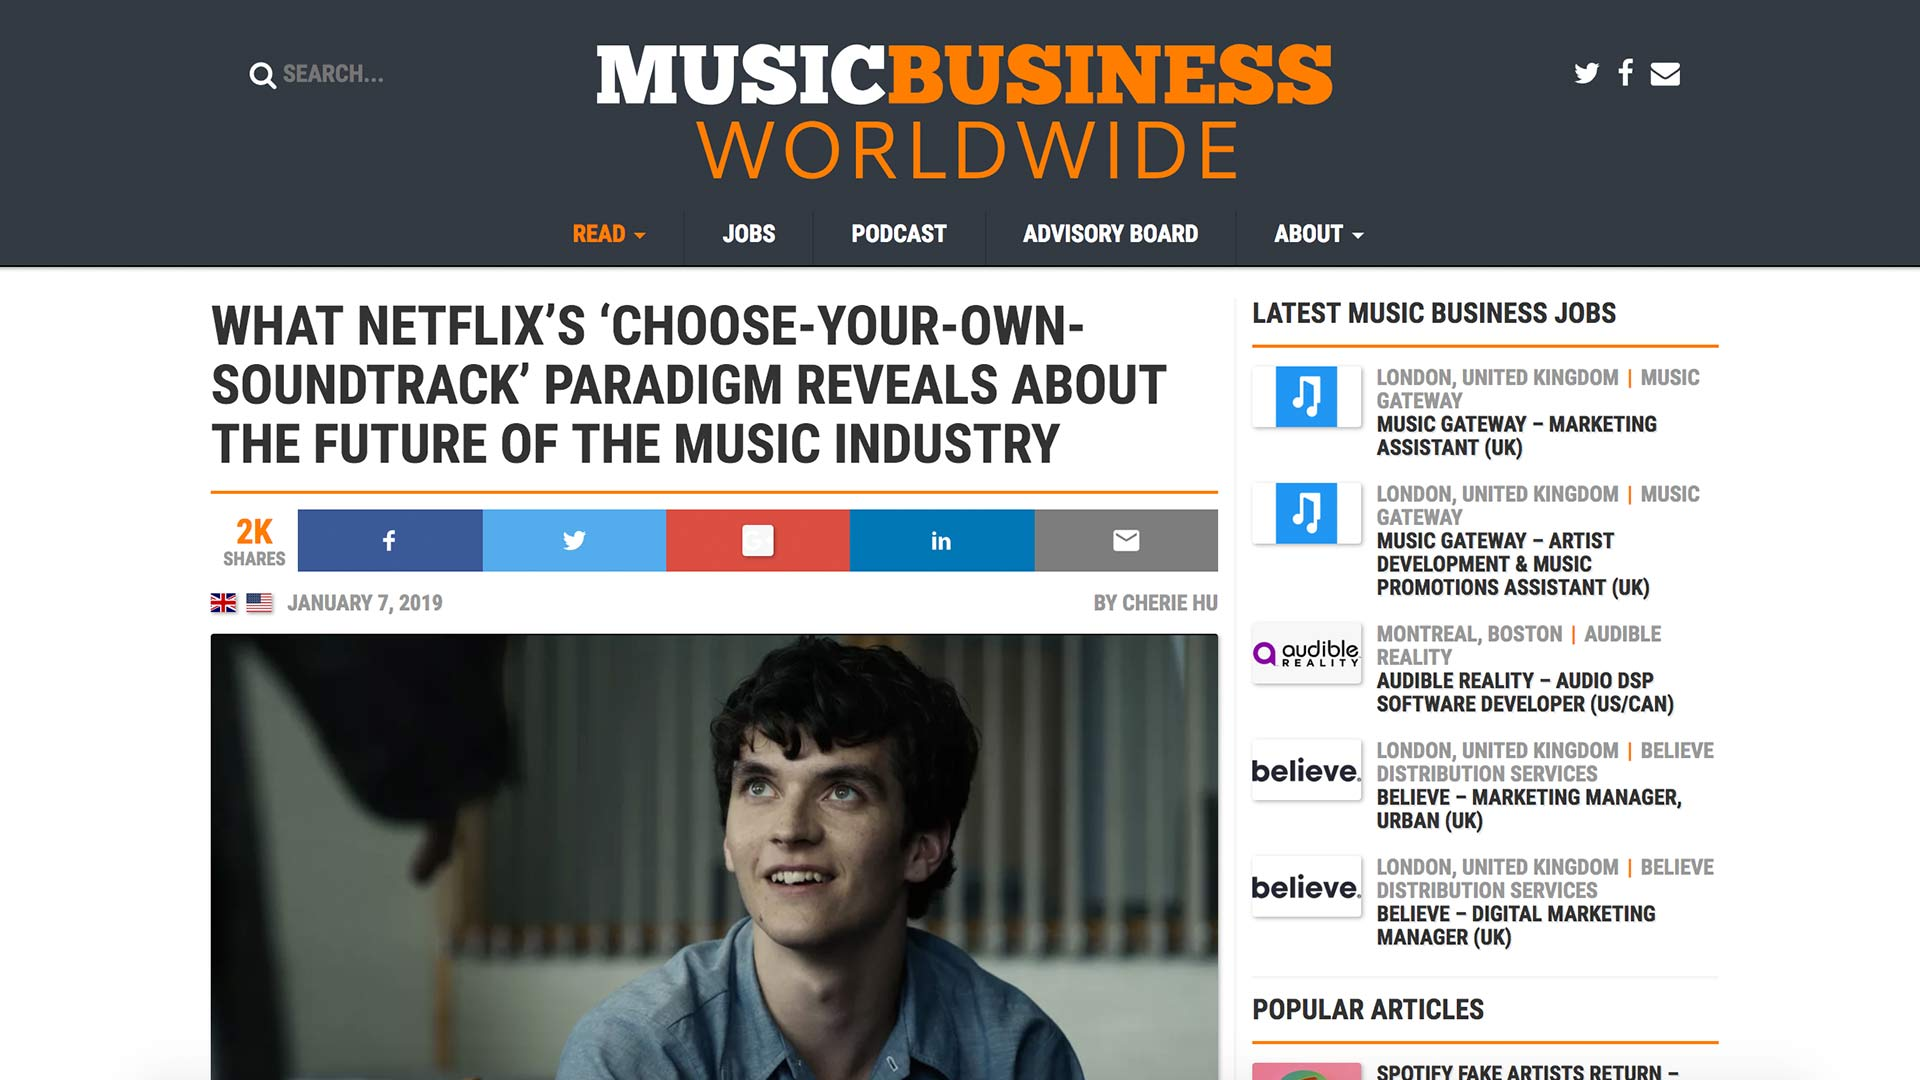 Fairness Rocks News WHAT NETFLIX'S 'CHOOSE-YOUR-OWN-SOUNDTRACK' PARADIGM REVEALS ABOUT THE FUTURE OF THE MUSIC INDUSTRY